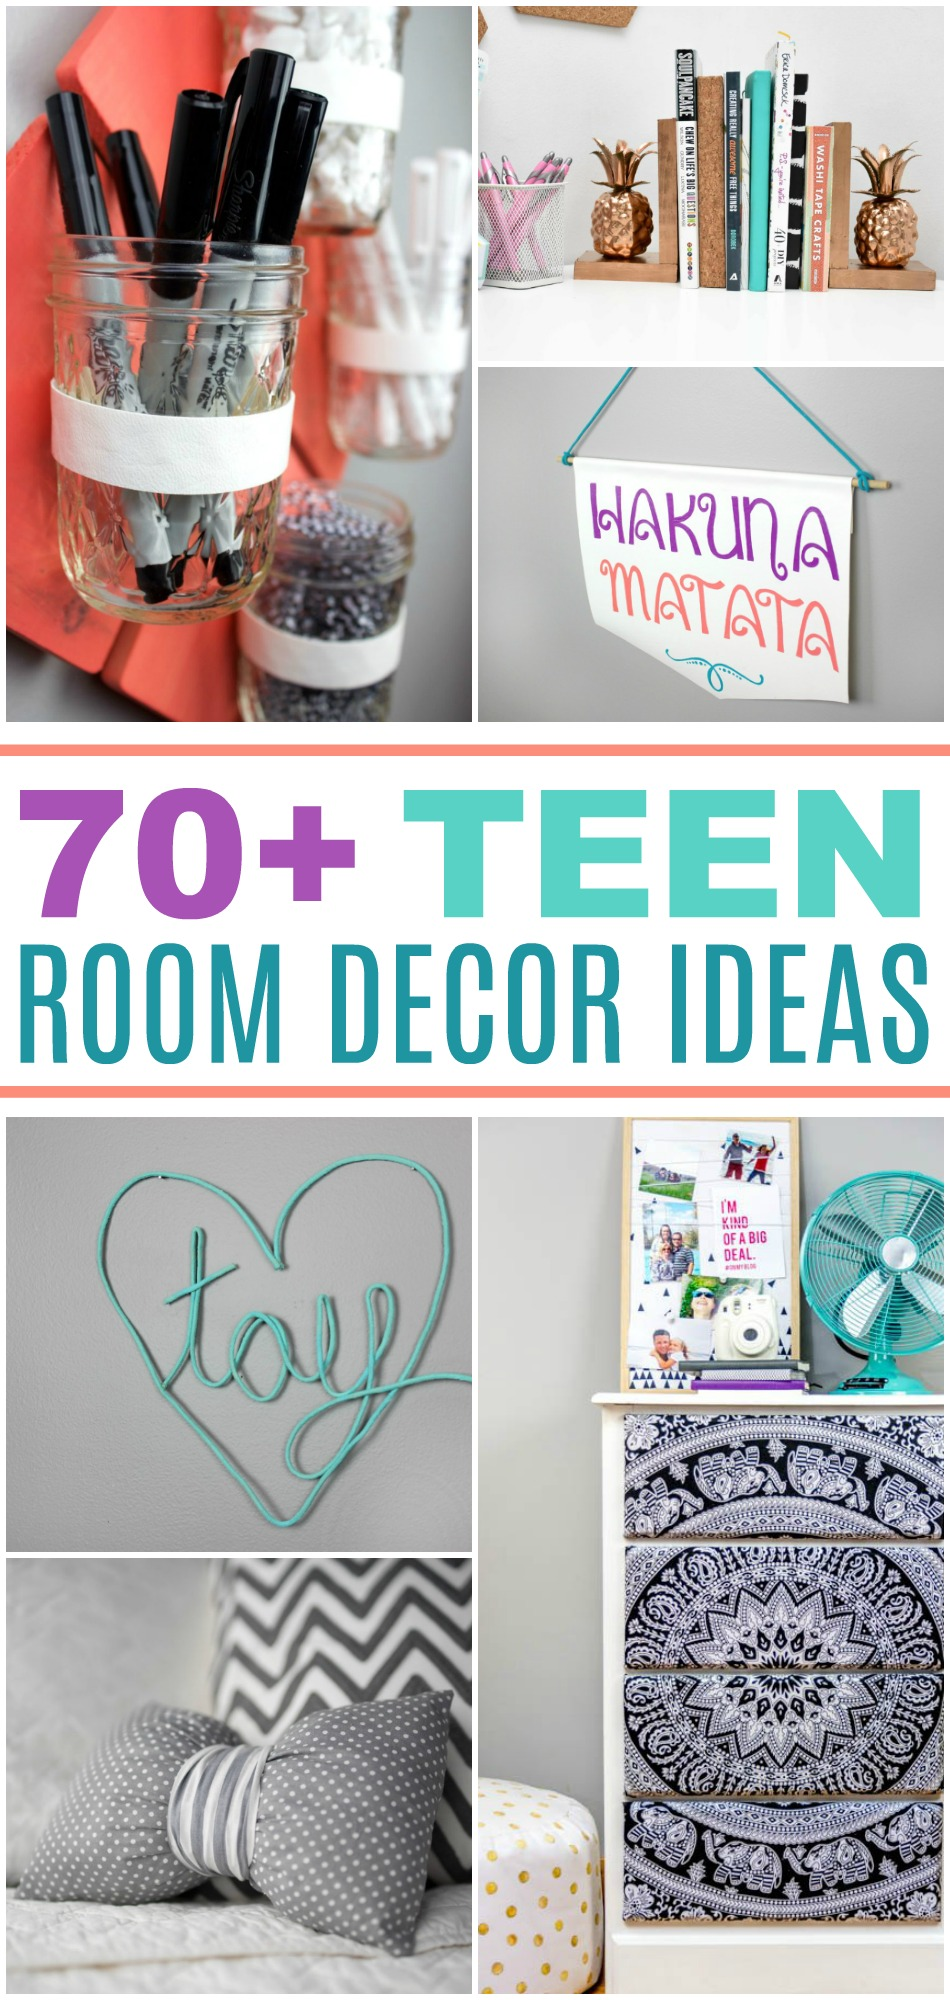 70+ DIY Room Decor Ideas For Teens on Room Decor For Teens  id=52731